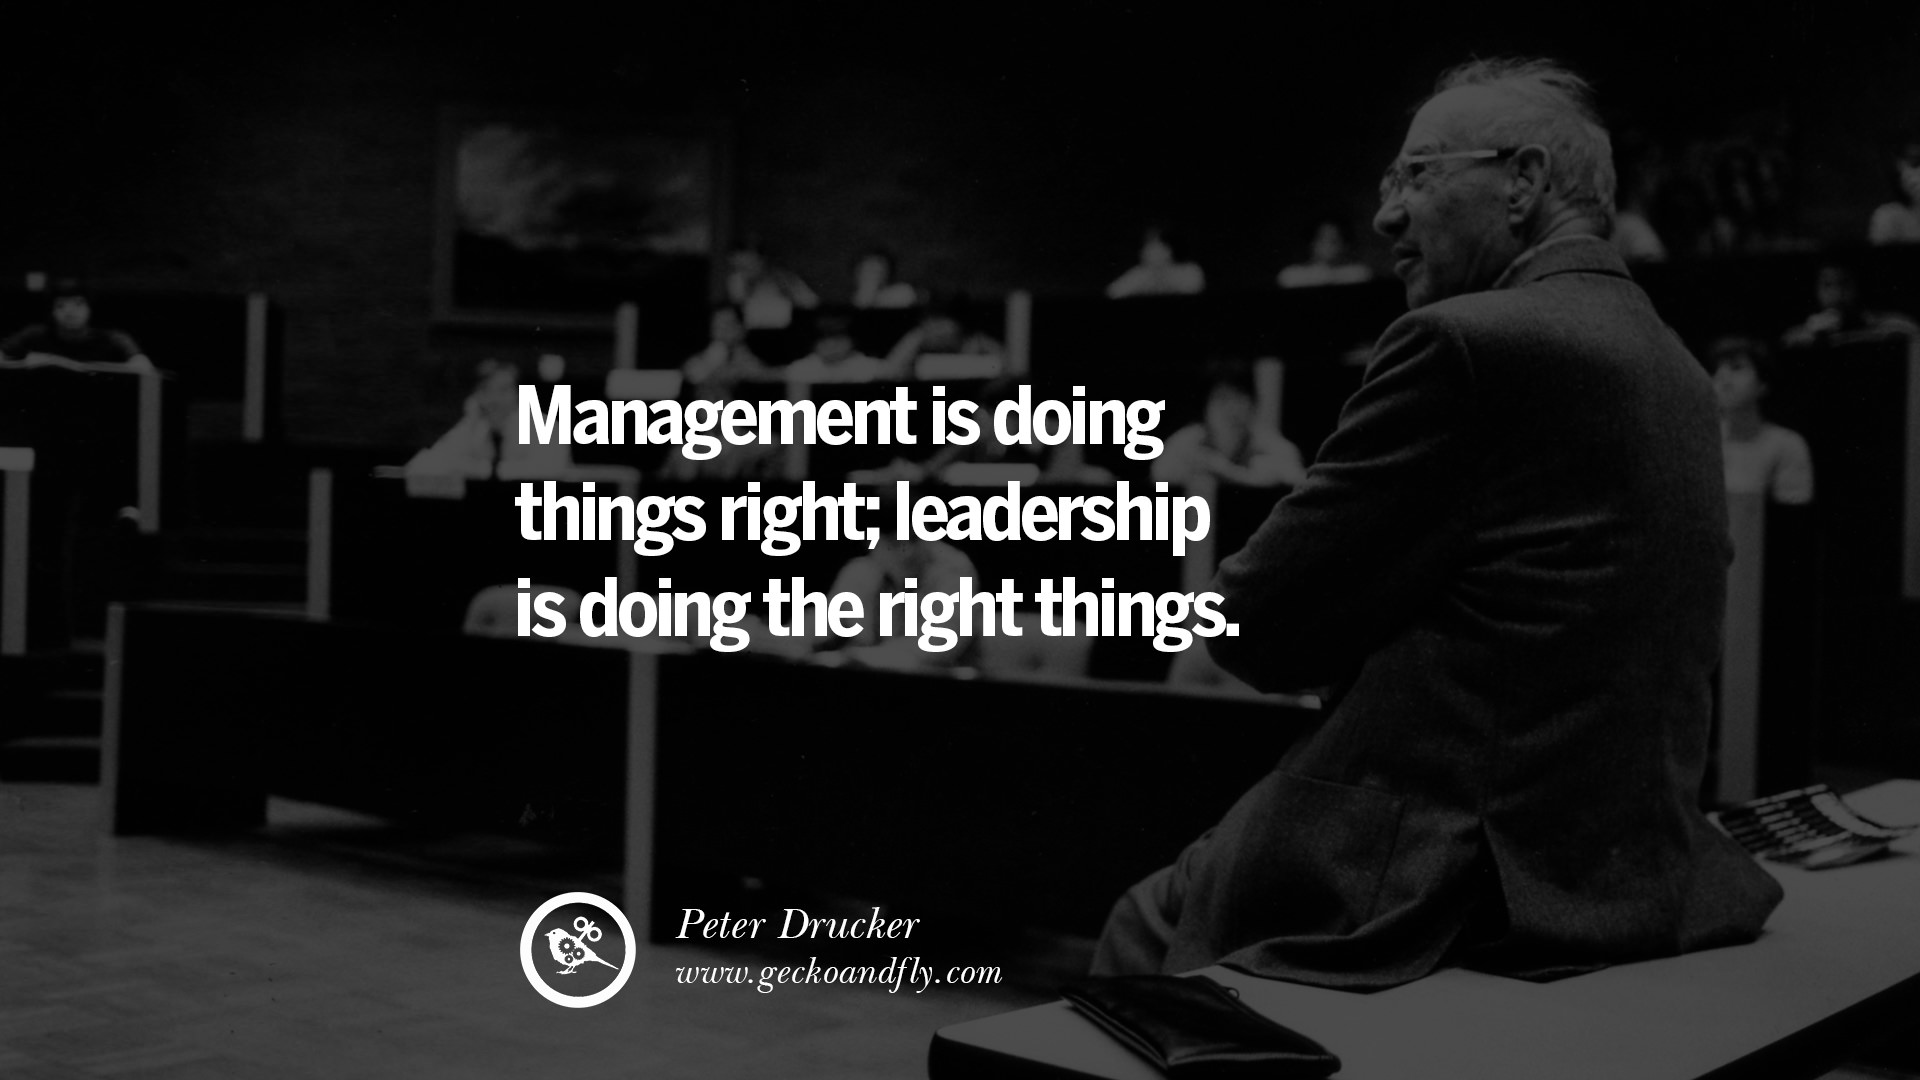 Push Yourself Quotes Wallpaper 22 Uplifting And Motivational Quotes On Management Leadership